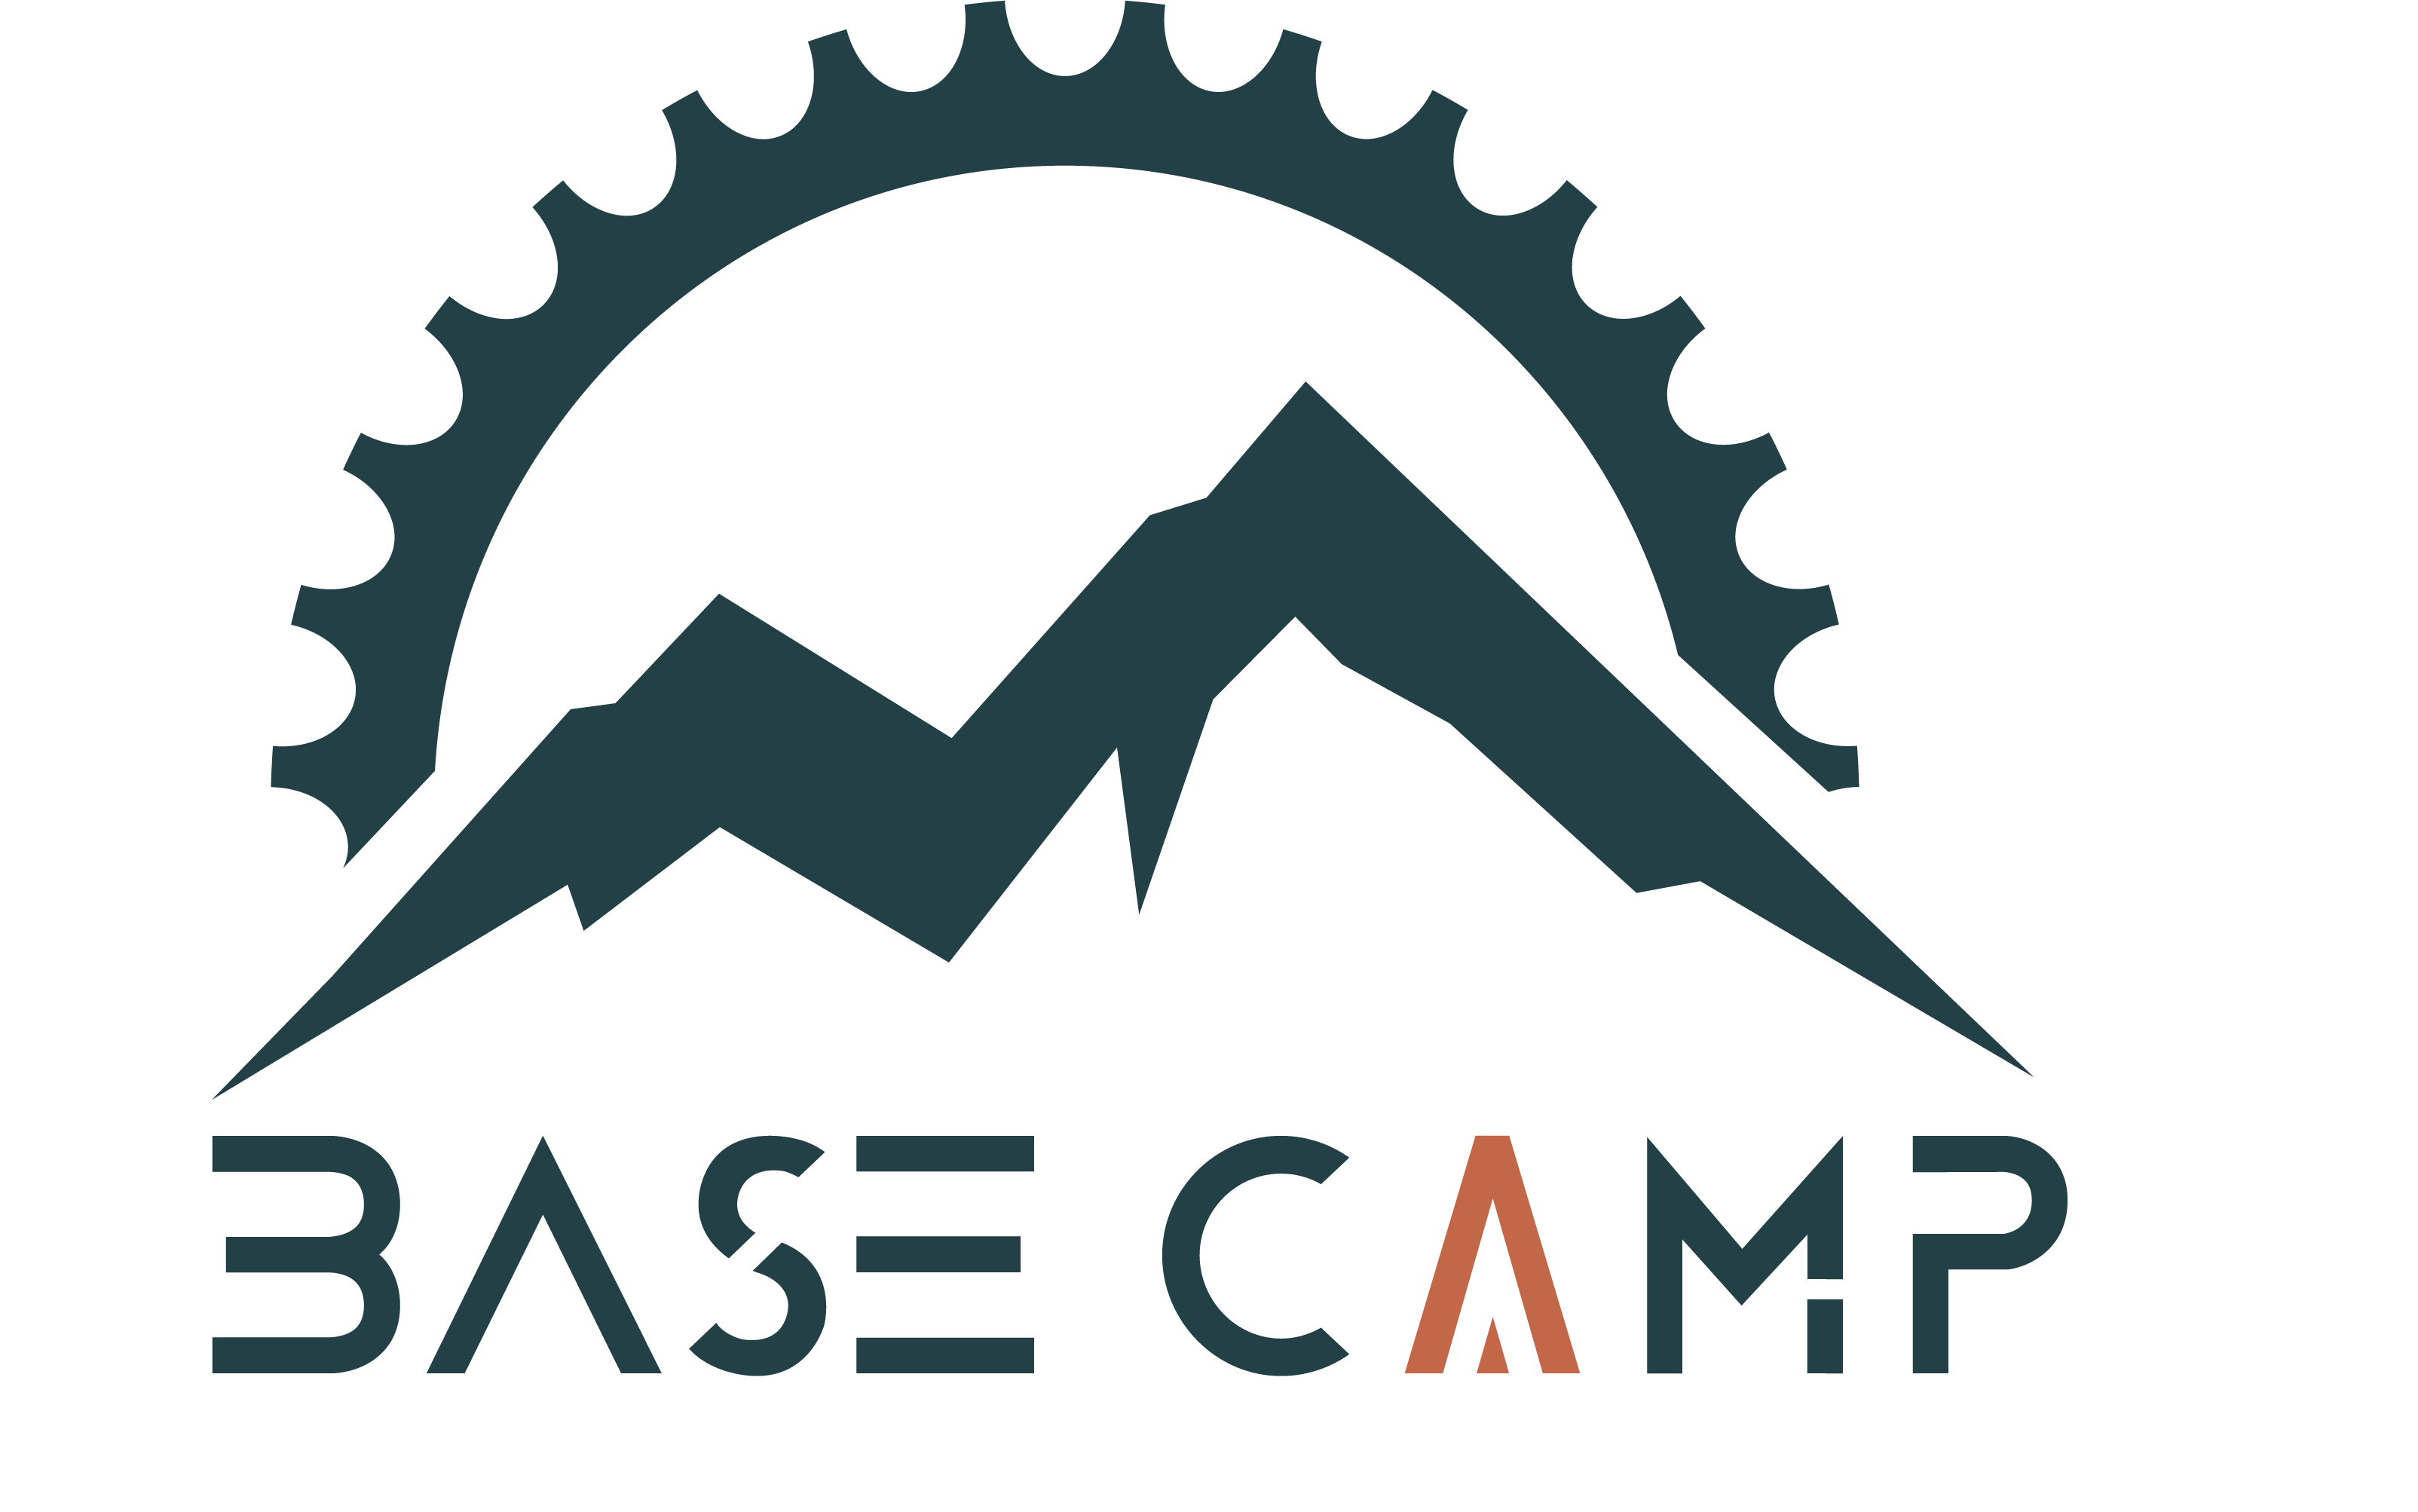 Base Camp Bike and Ski